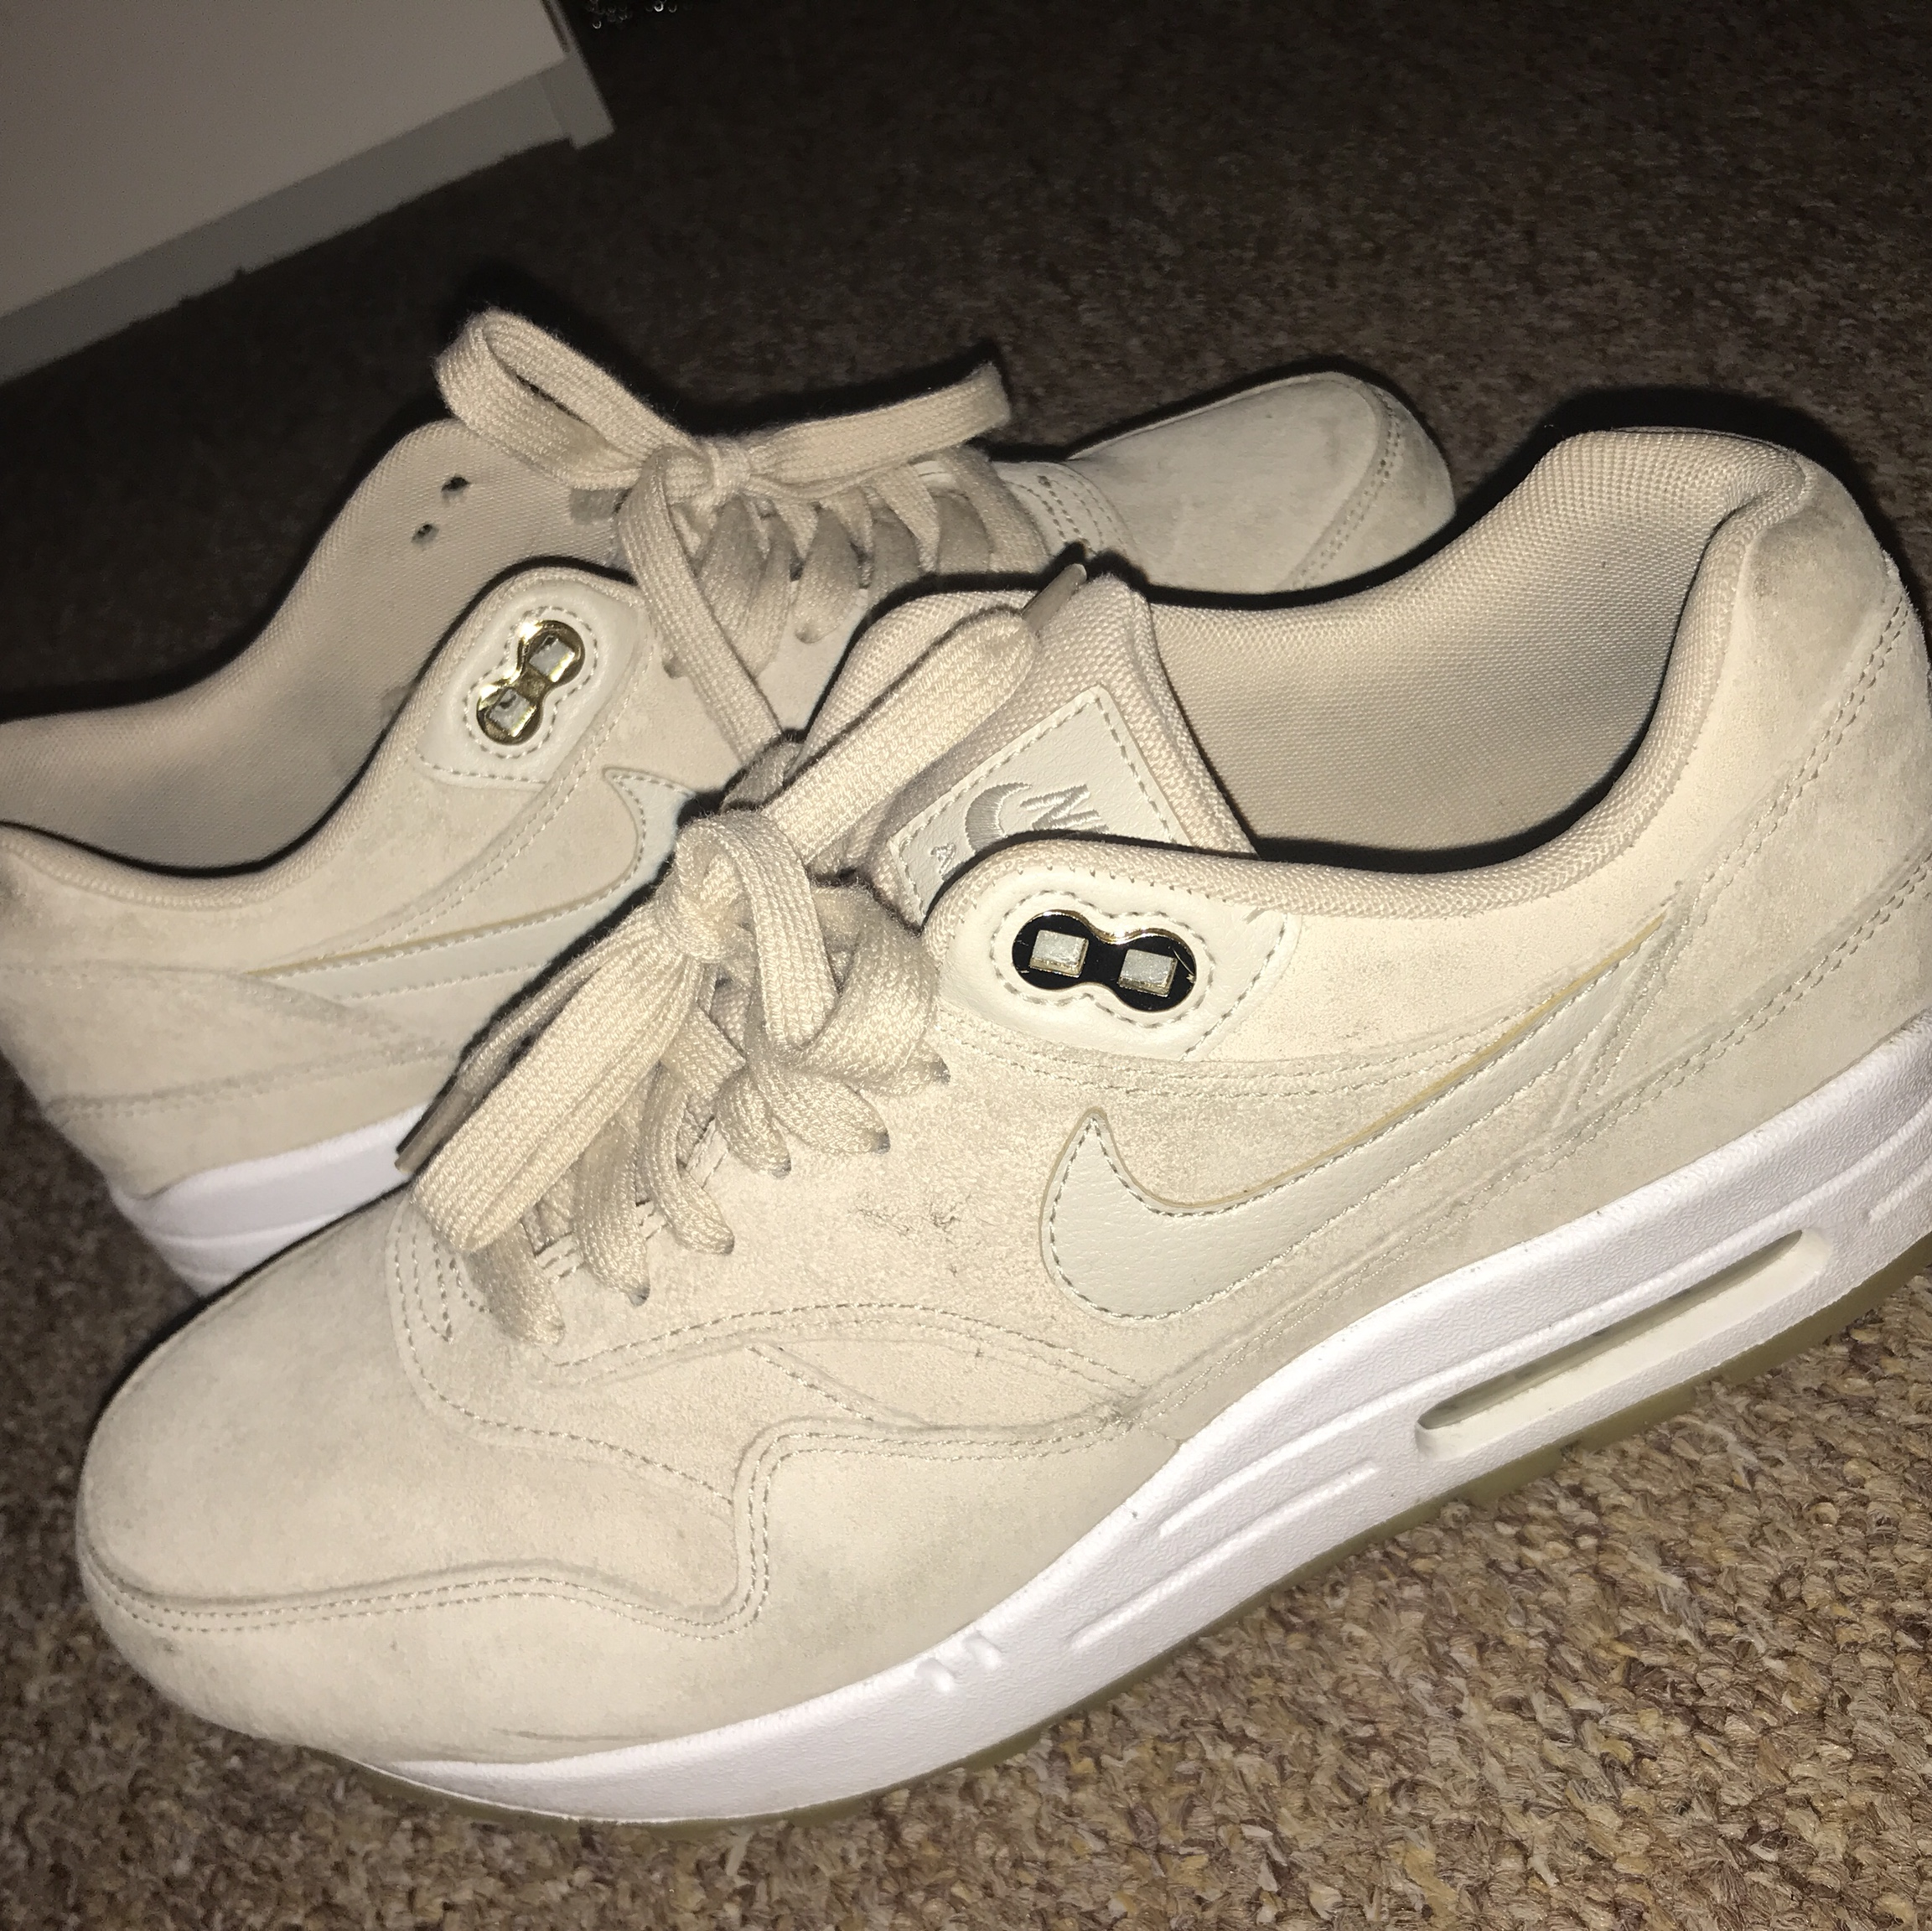 Women's Nike Air Max 1 Oatmeal White Suede Size 5 Depop